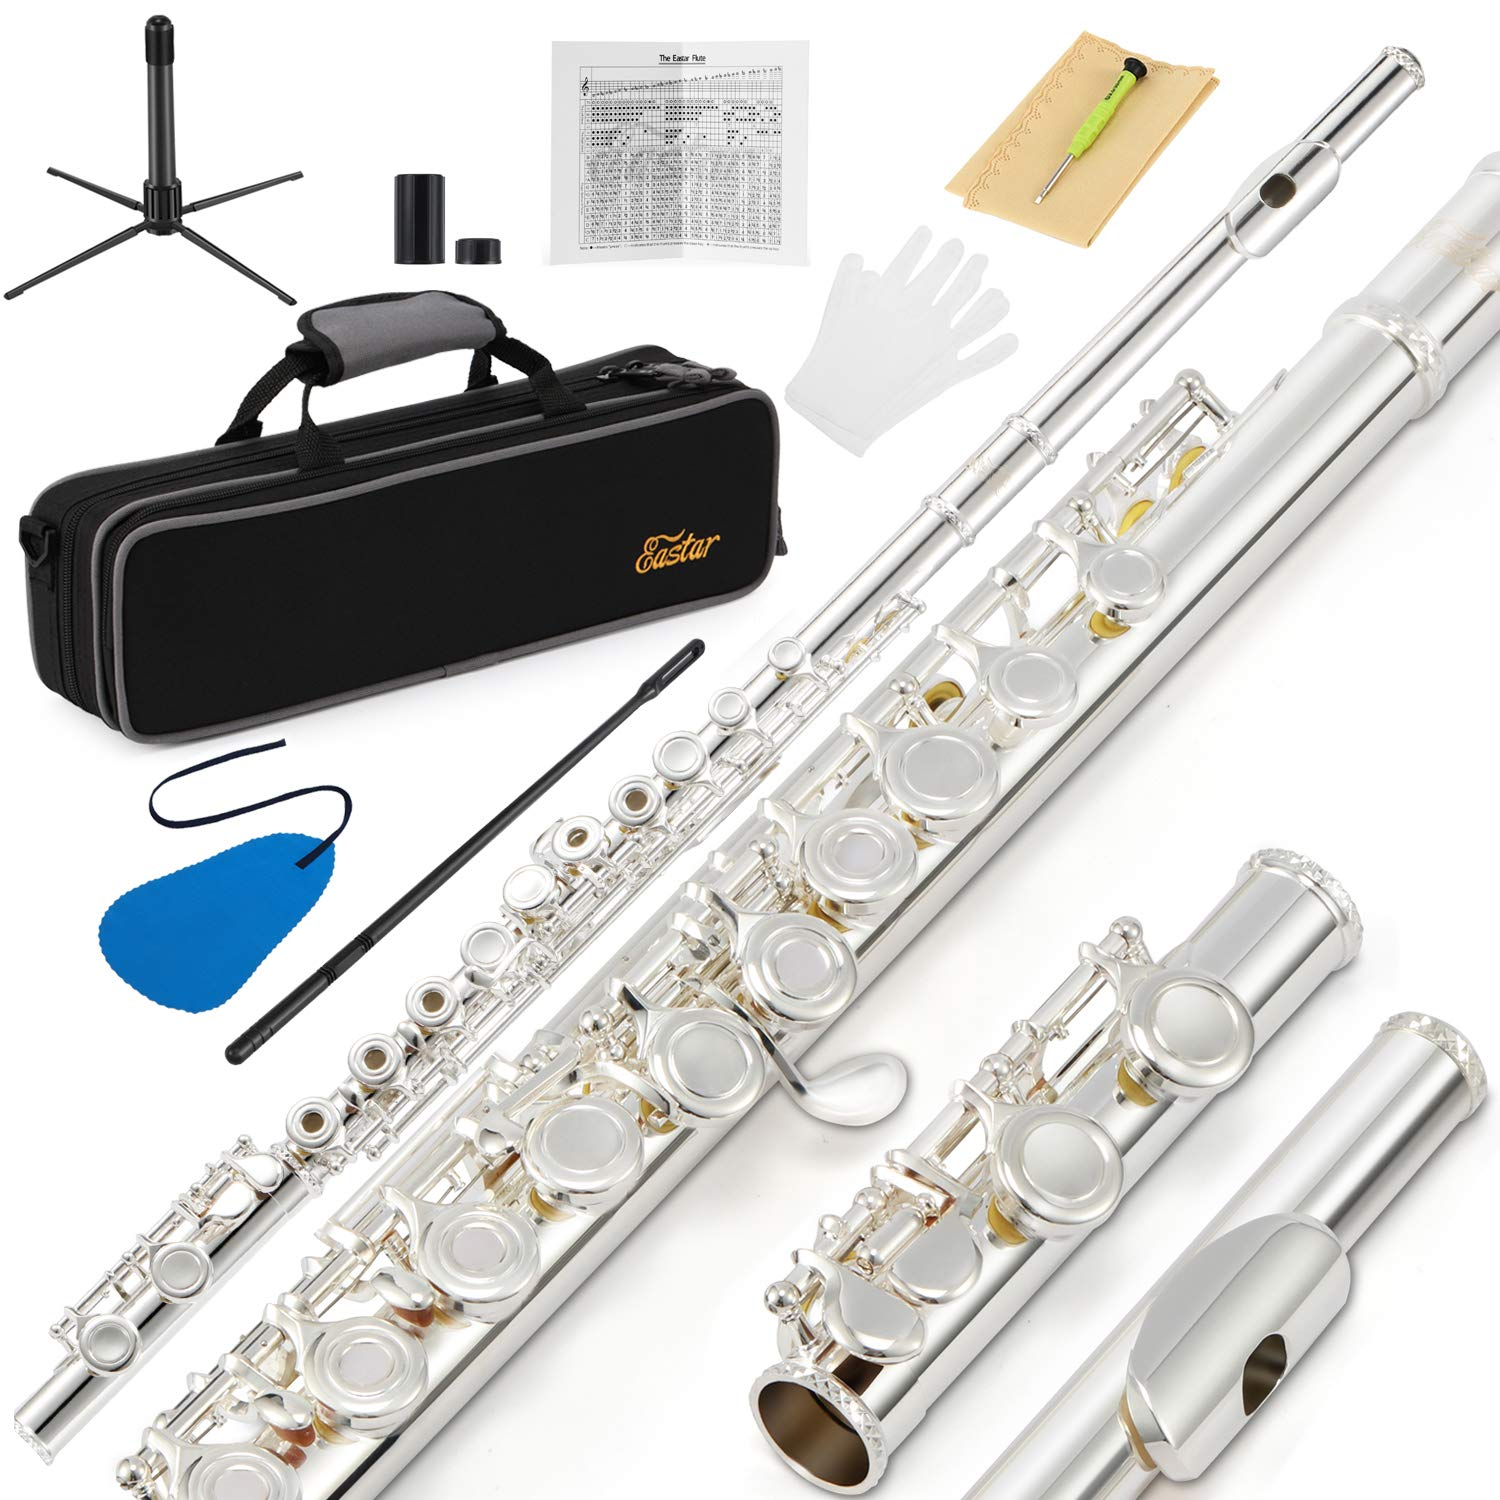 Eastar EFL-2 Open/Close Hole C Flutes 16 Keys Silver Plated Beginner Flute Set with Fingering Chart,Hard Case,Cleaning Rod,Cloth and Flute Swab,Screwdriver,and Gloves EB016-FBA-CA